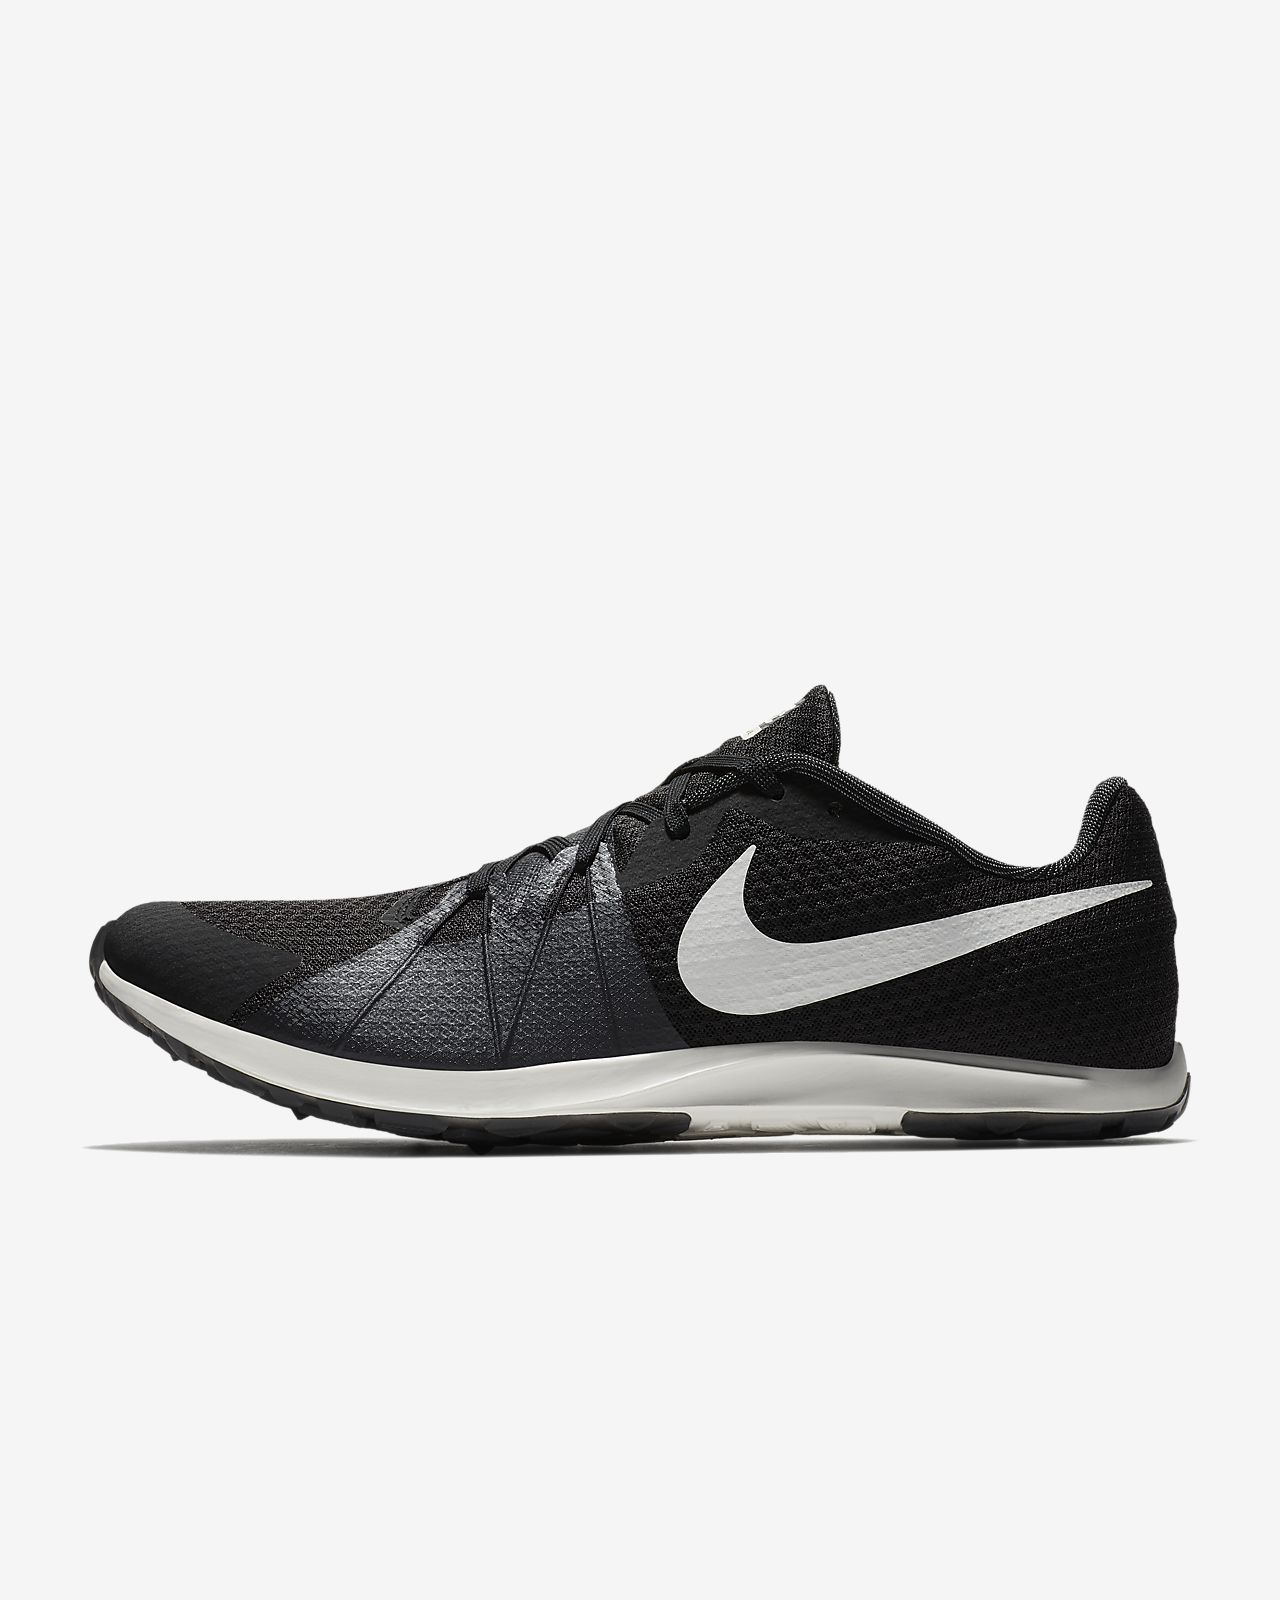 080732ceca26 ... top quality nike zoom rival waffle racing shoe f96dd ac8c3